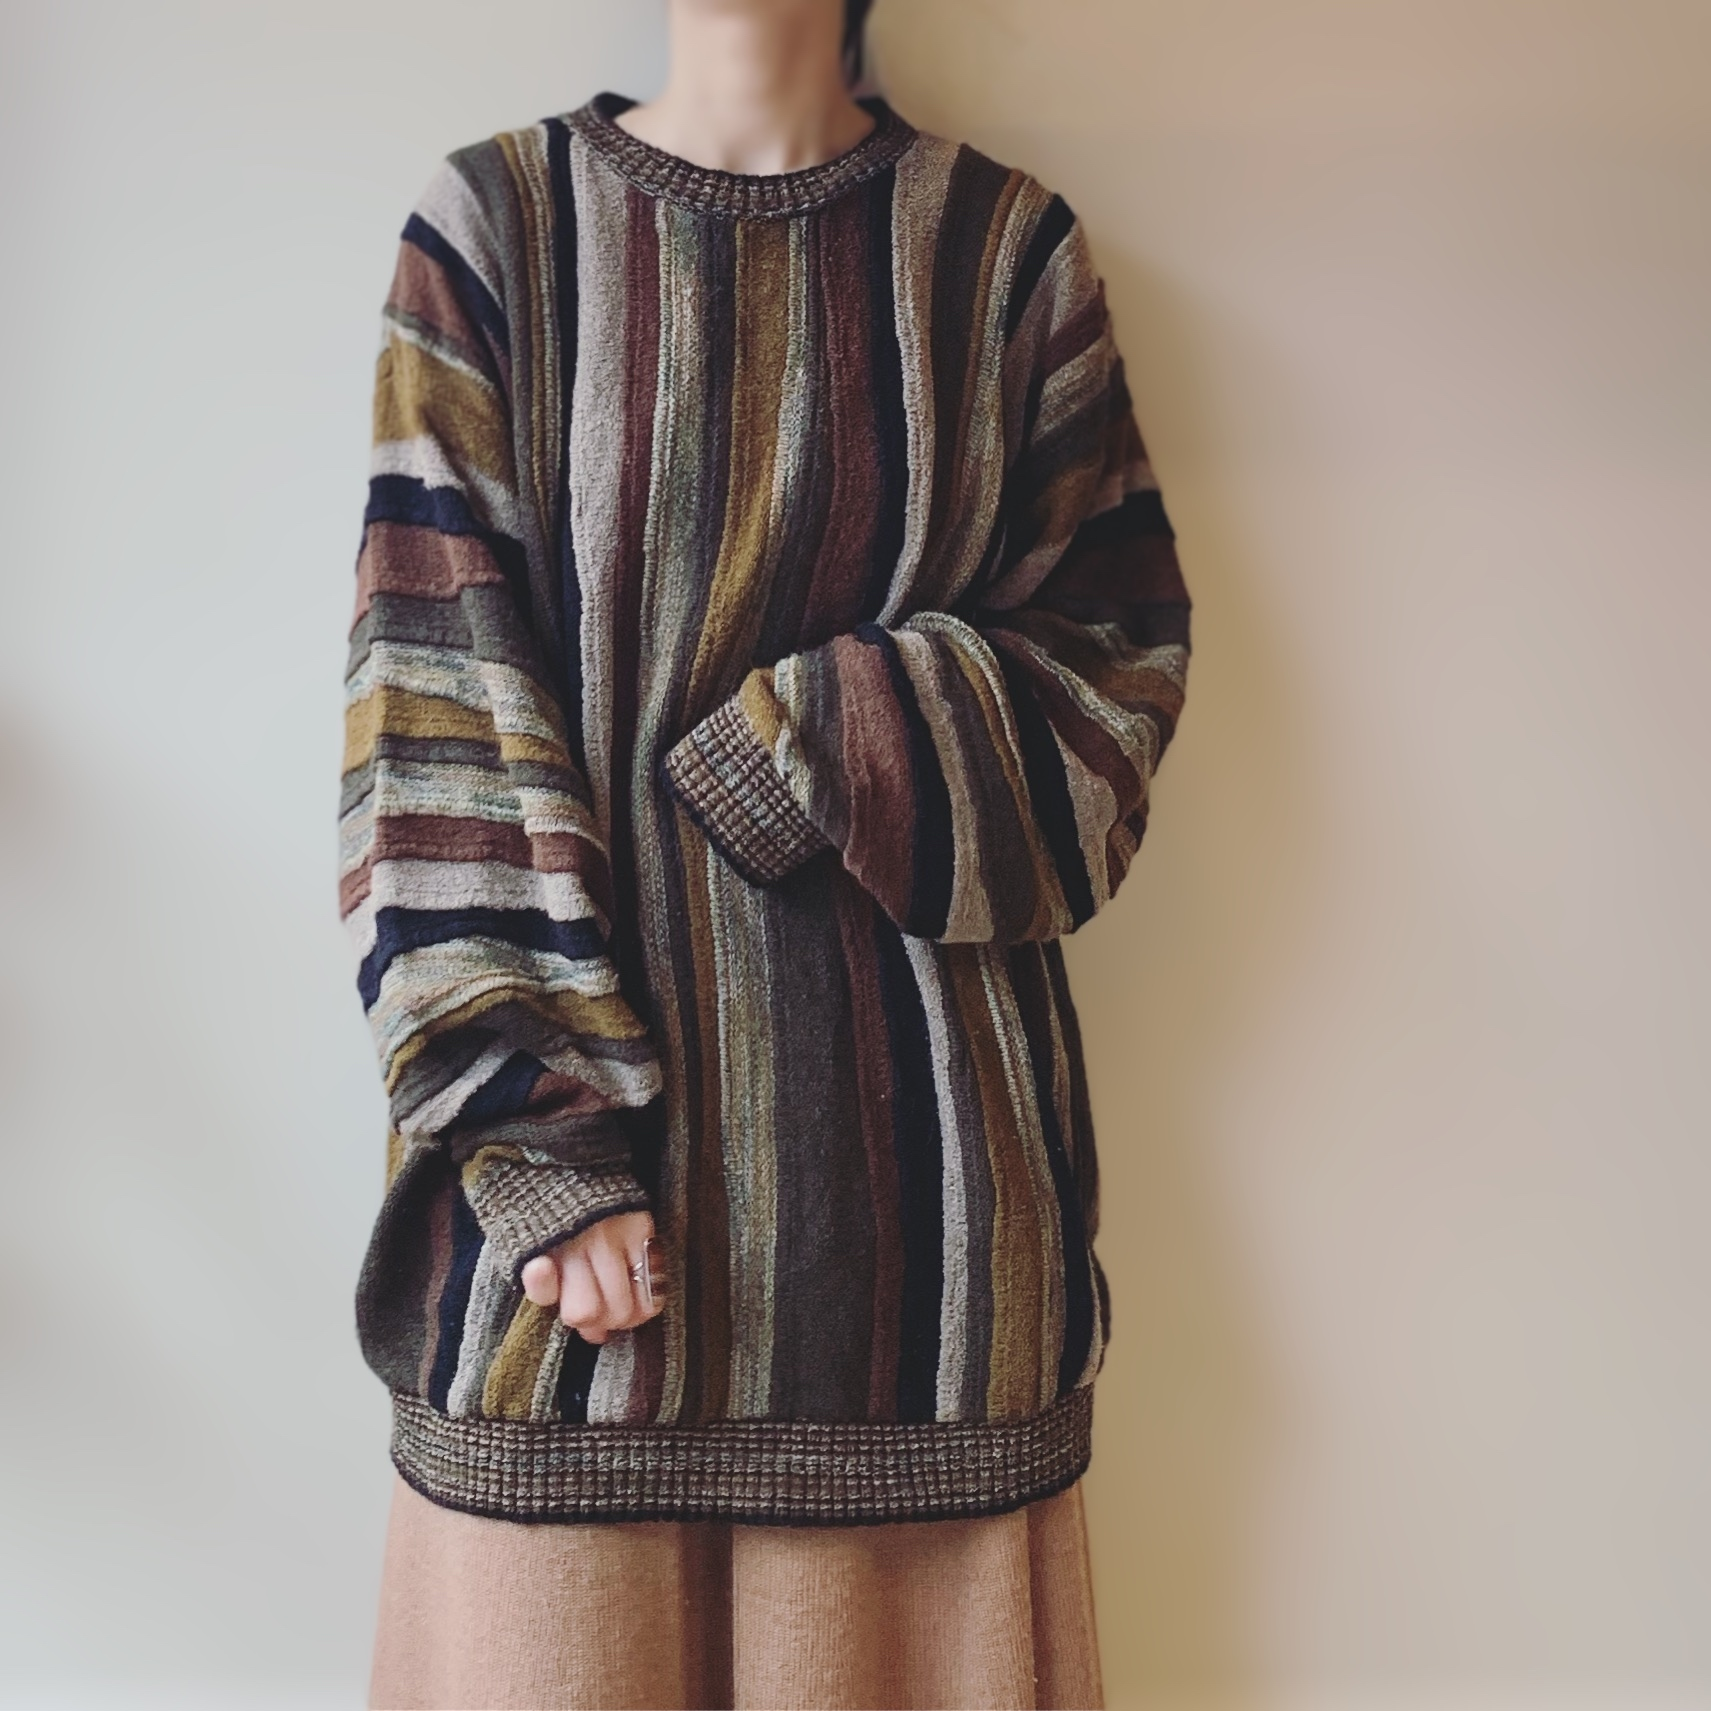 vintage design 3D knit sweater